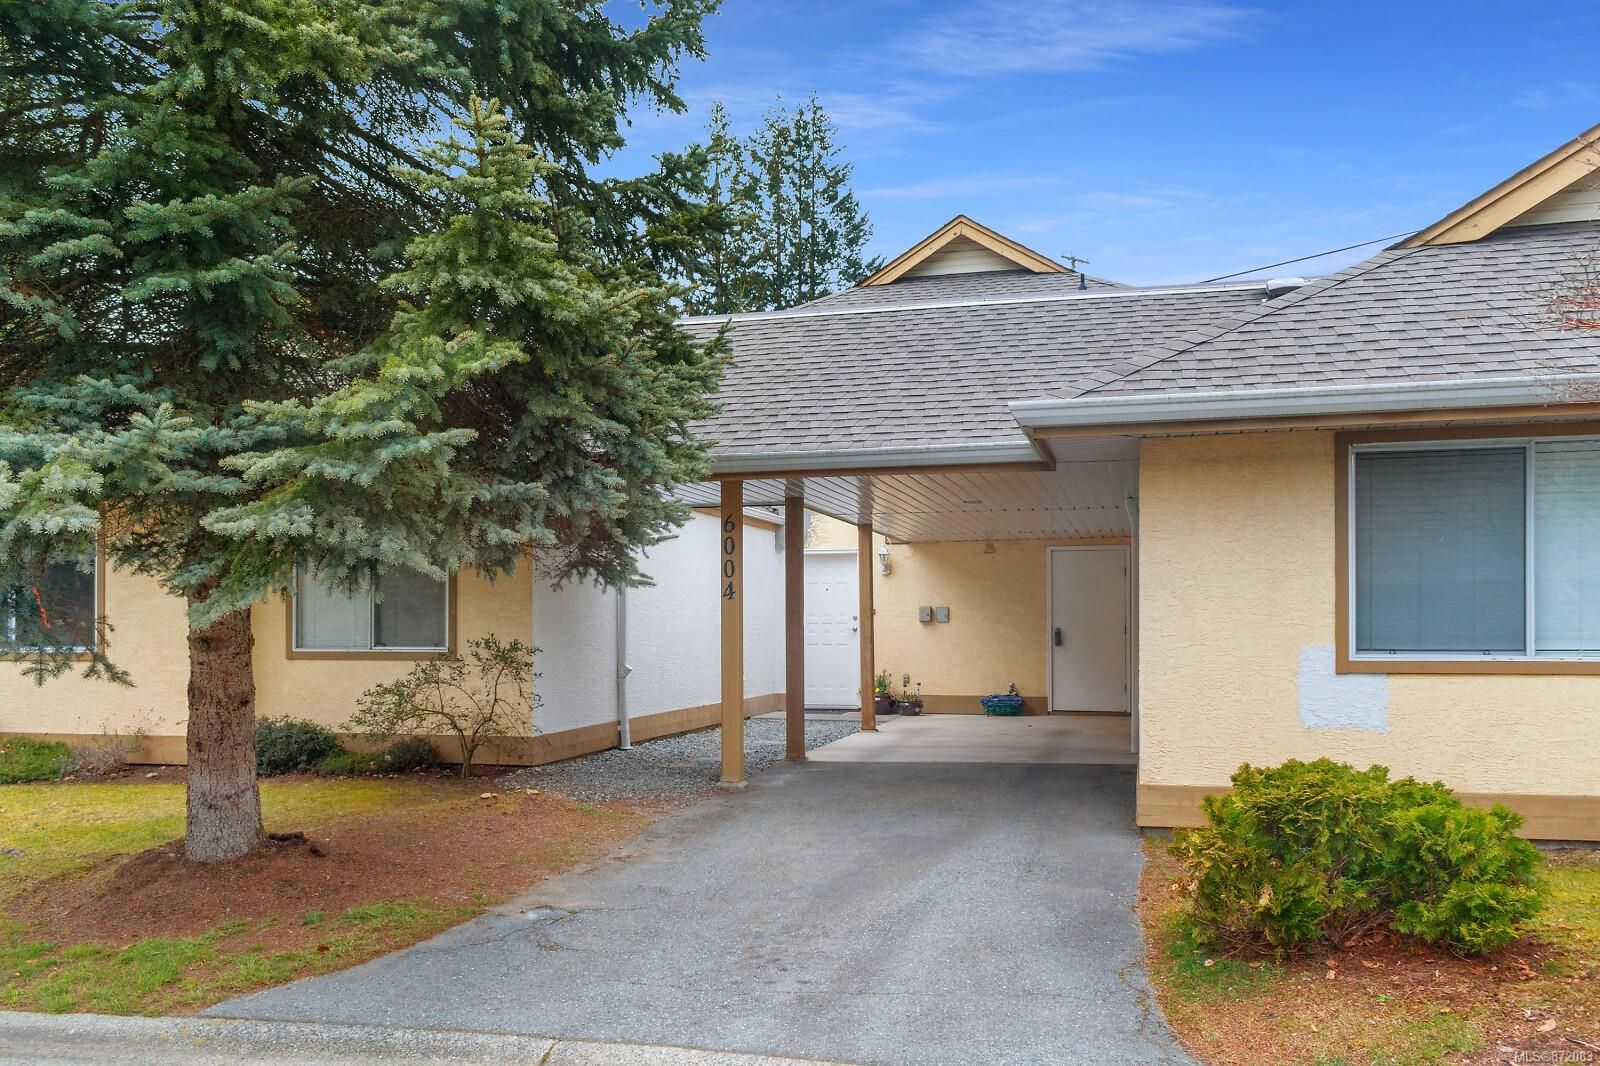 Main Photo: 6004 Jakes Pl in : Na Pleasant Valley Row/Townhouse for sale (Nanaimo)  : MLS®# 872083